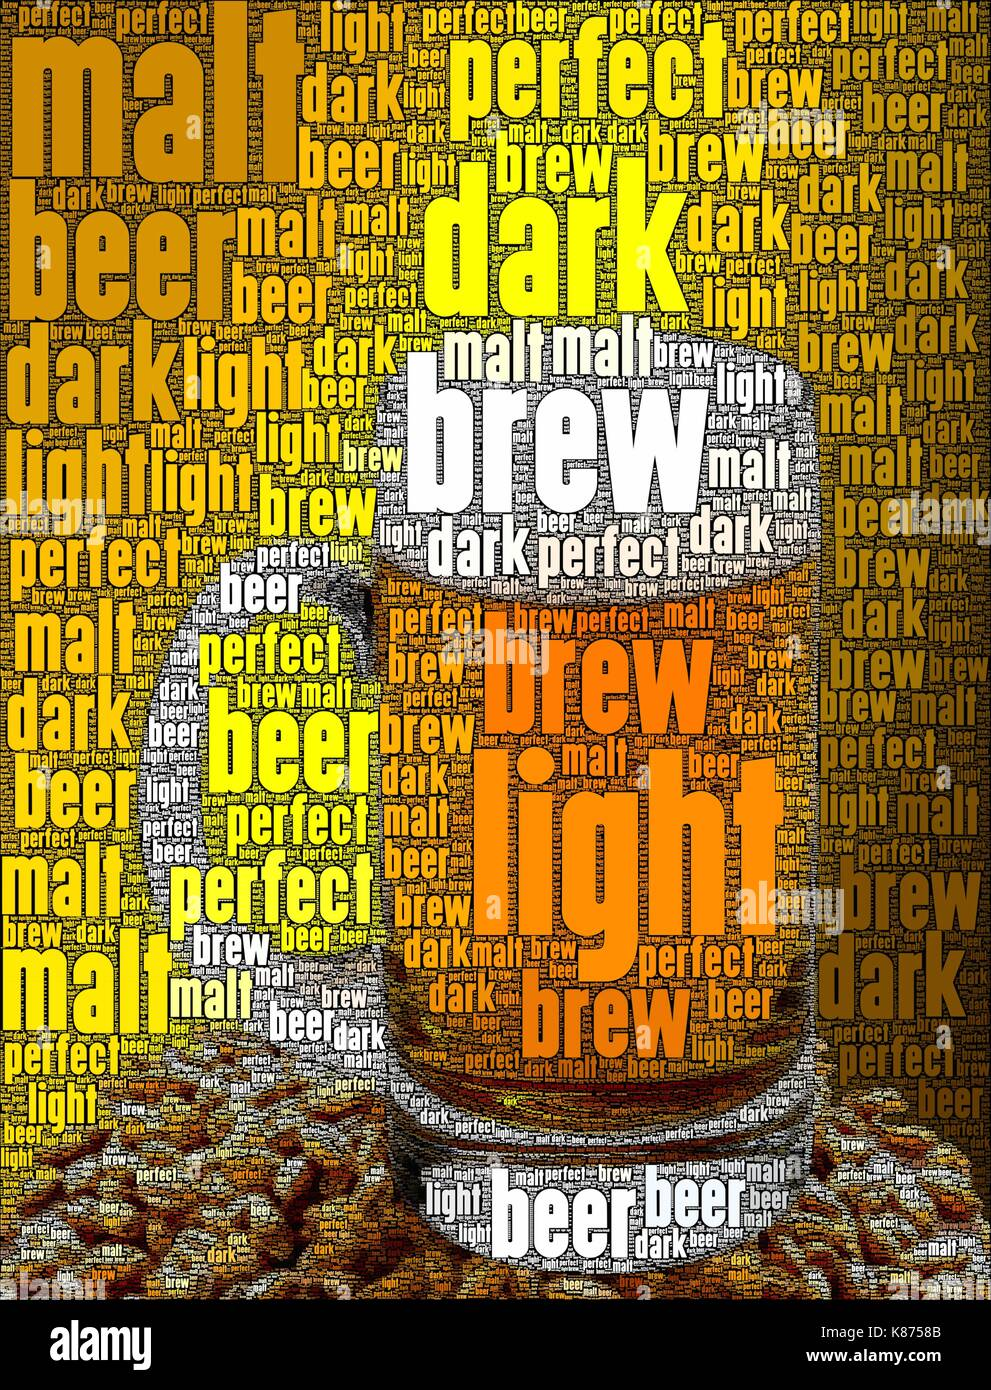 Beer concept art, made with words about the subject - Stock Image